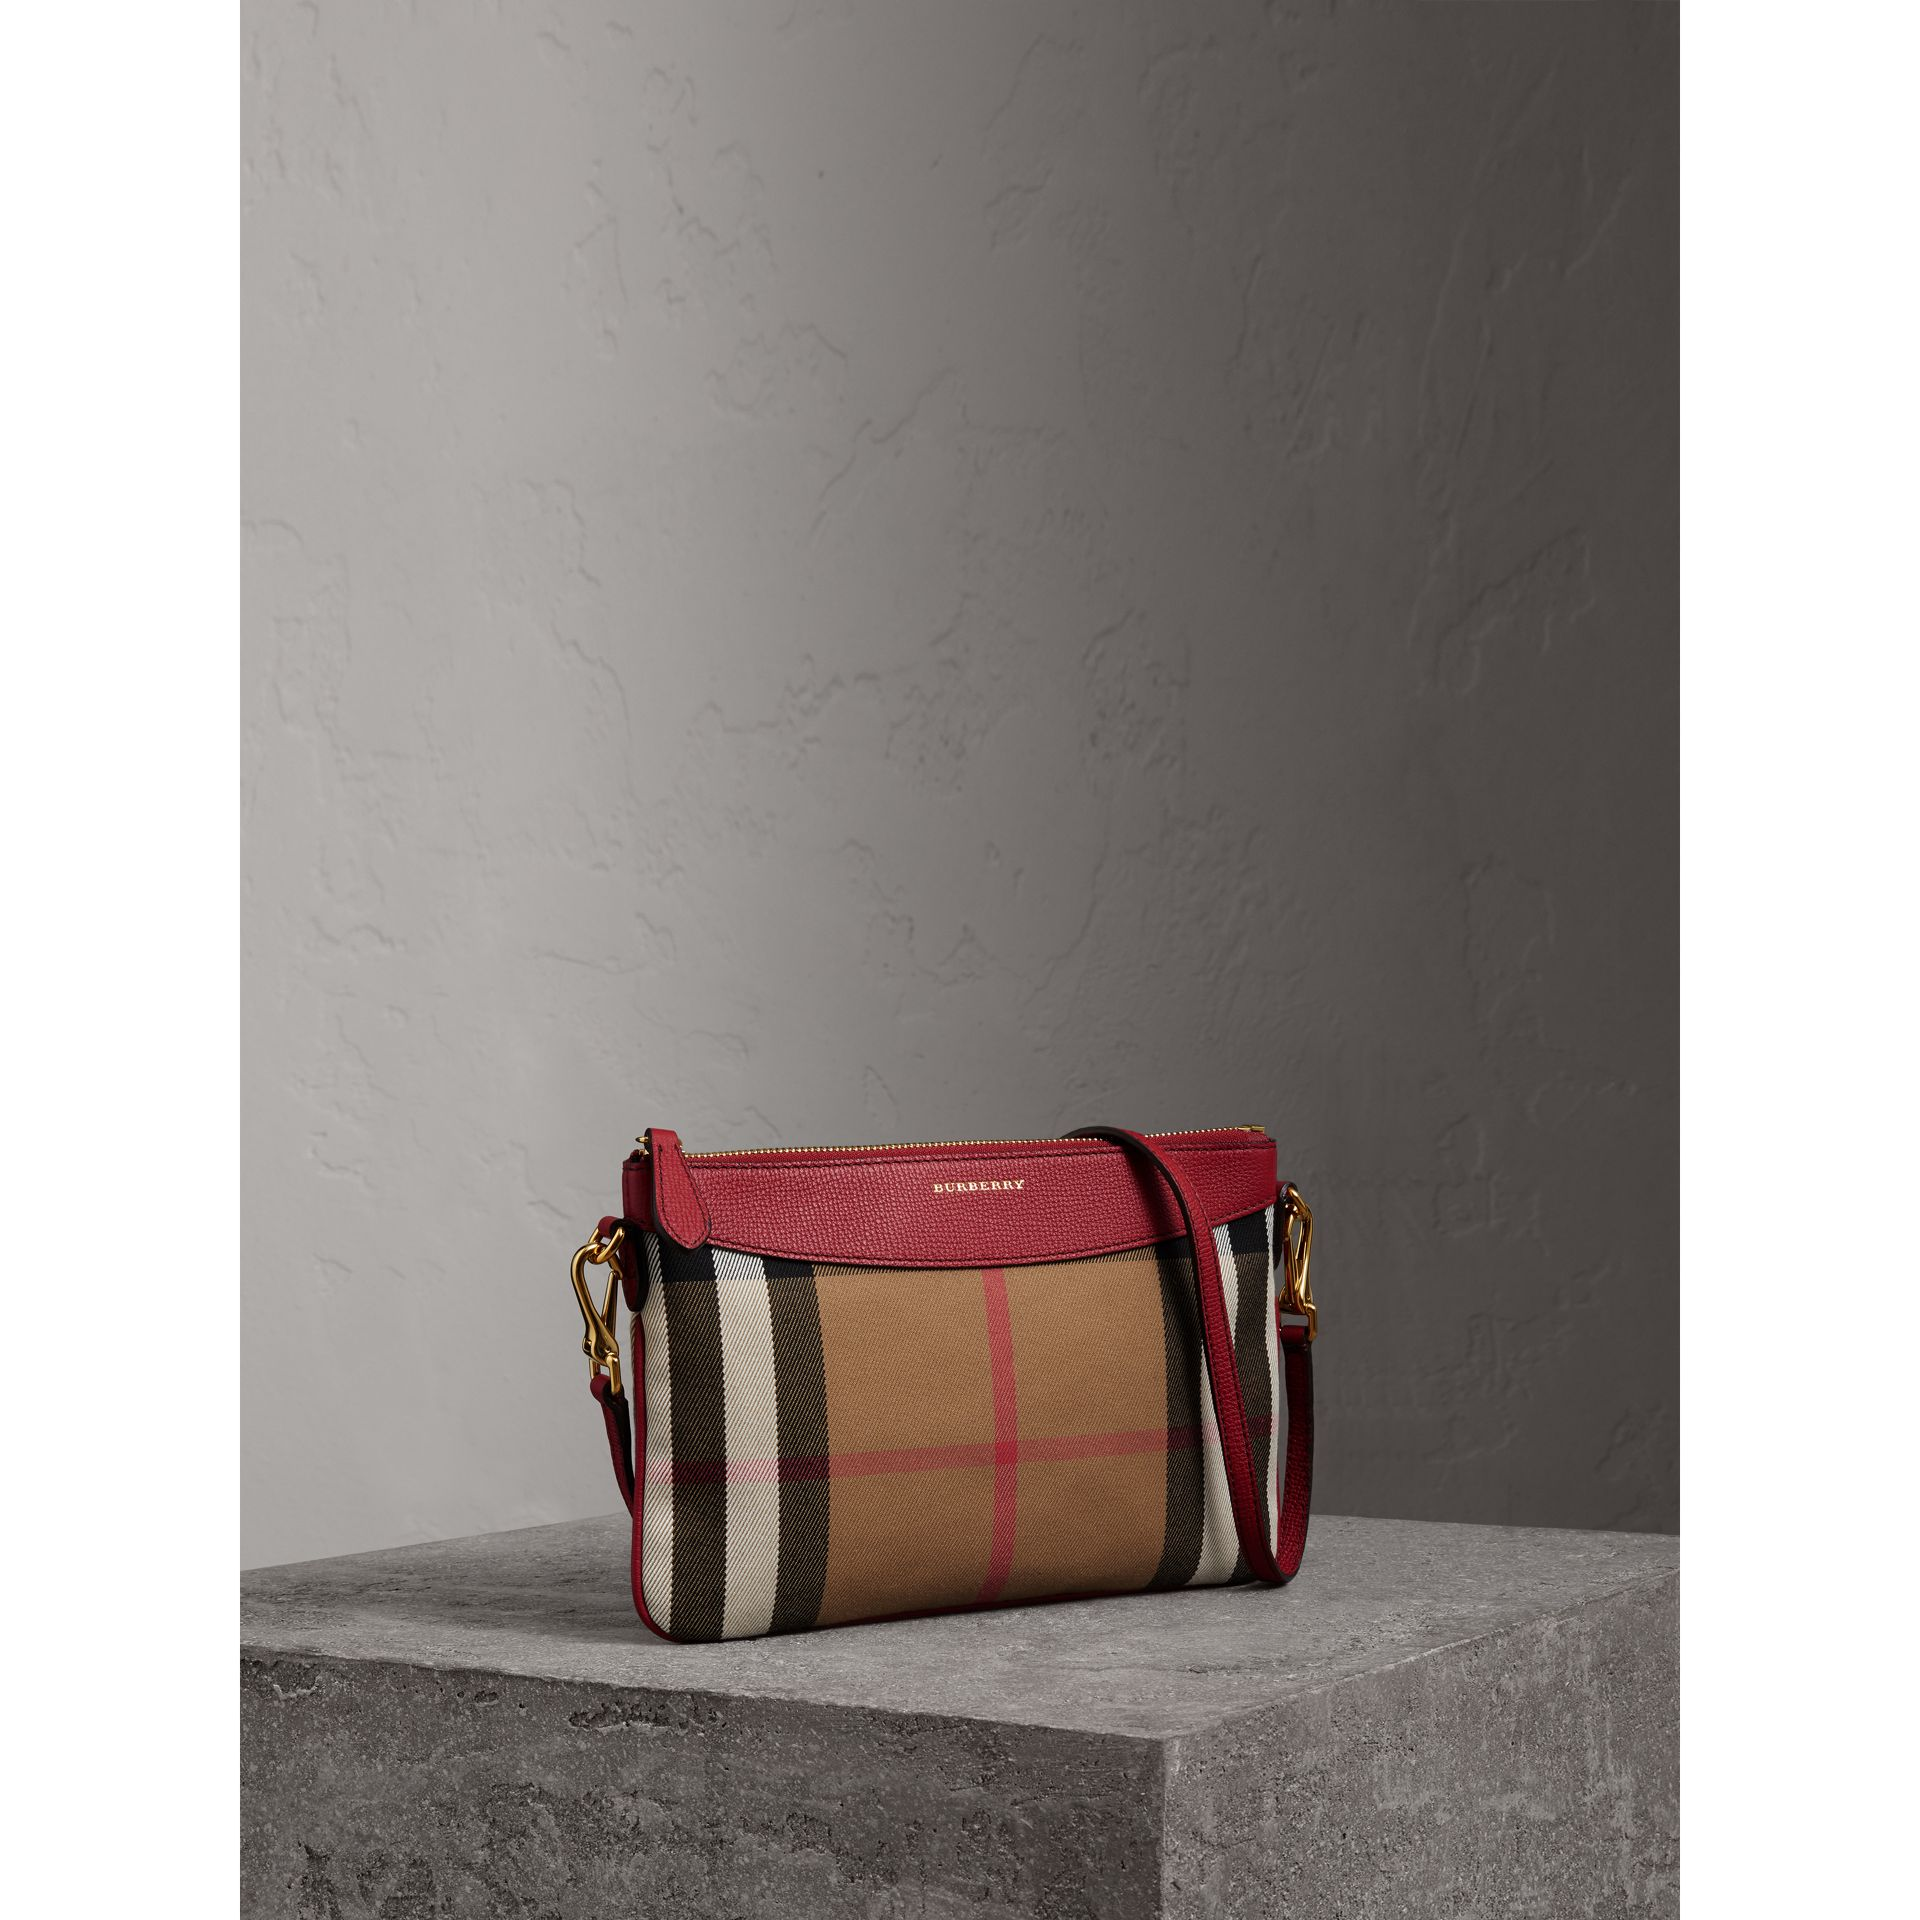 House Check and Leather Clutch Bag in Military Red - Women | Burberry United Kingdom - gallery image 6